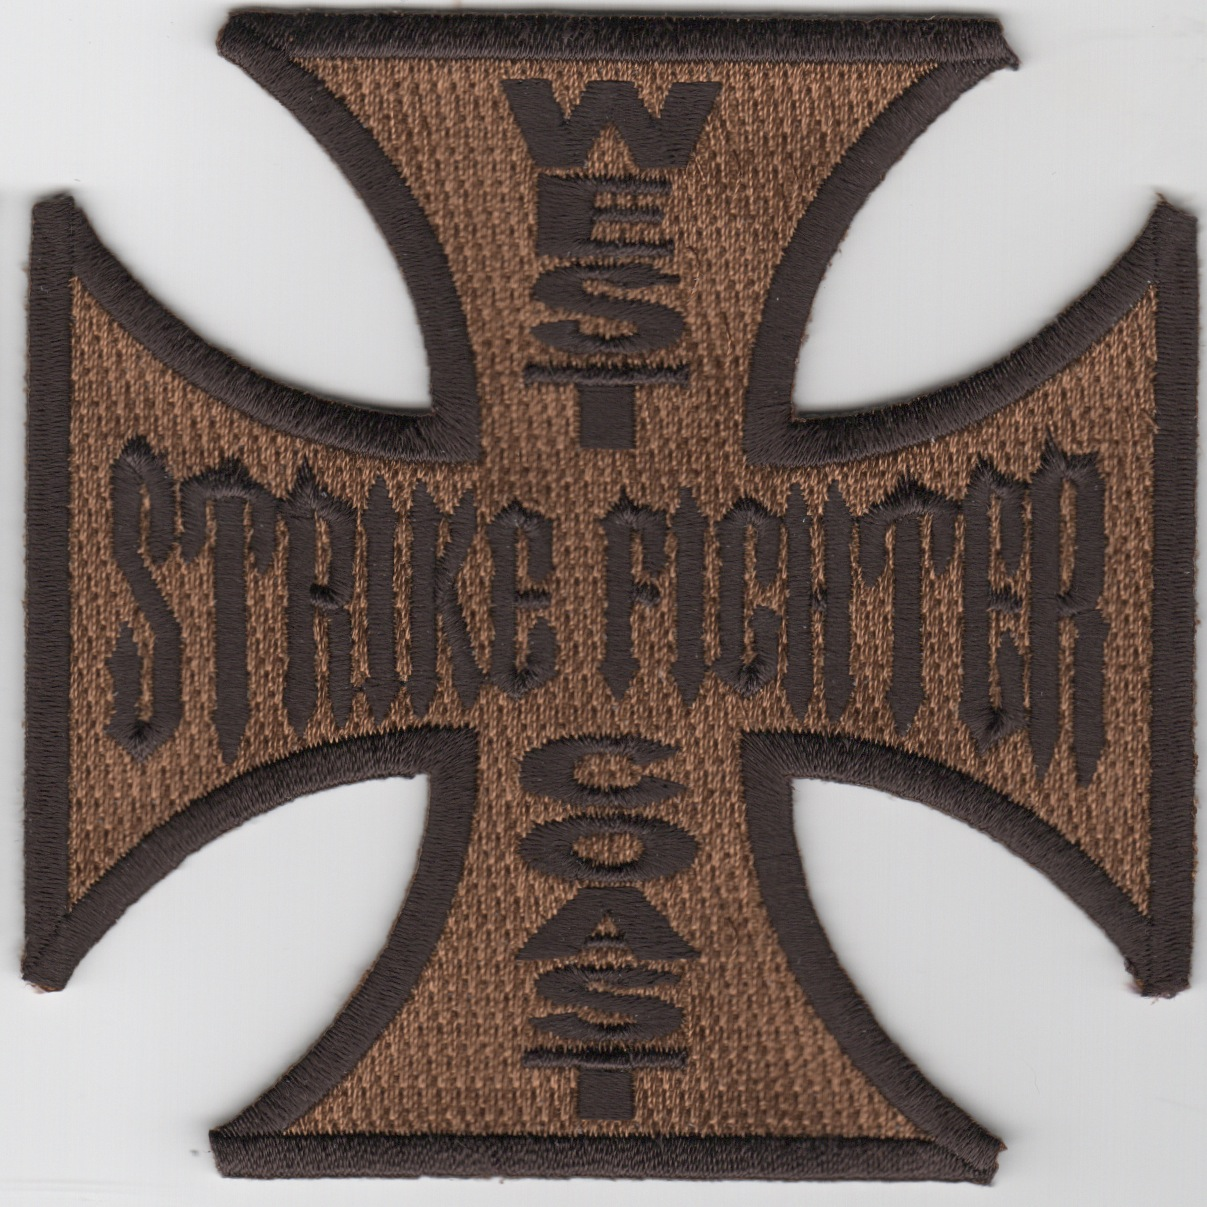 West Coast Strike Fighter Maltese Cross (Des)